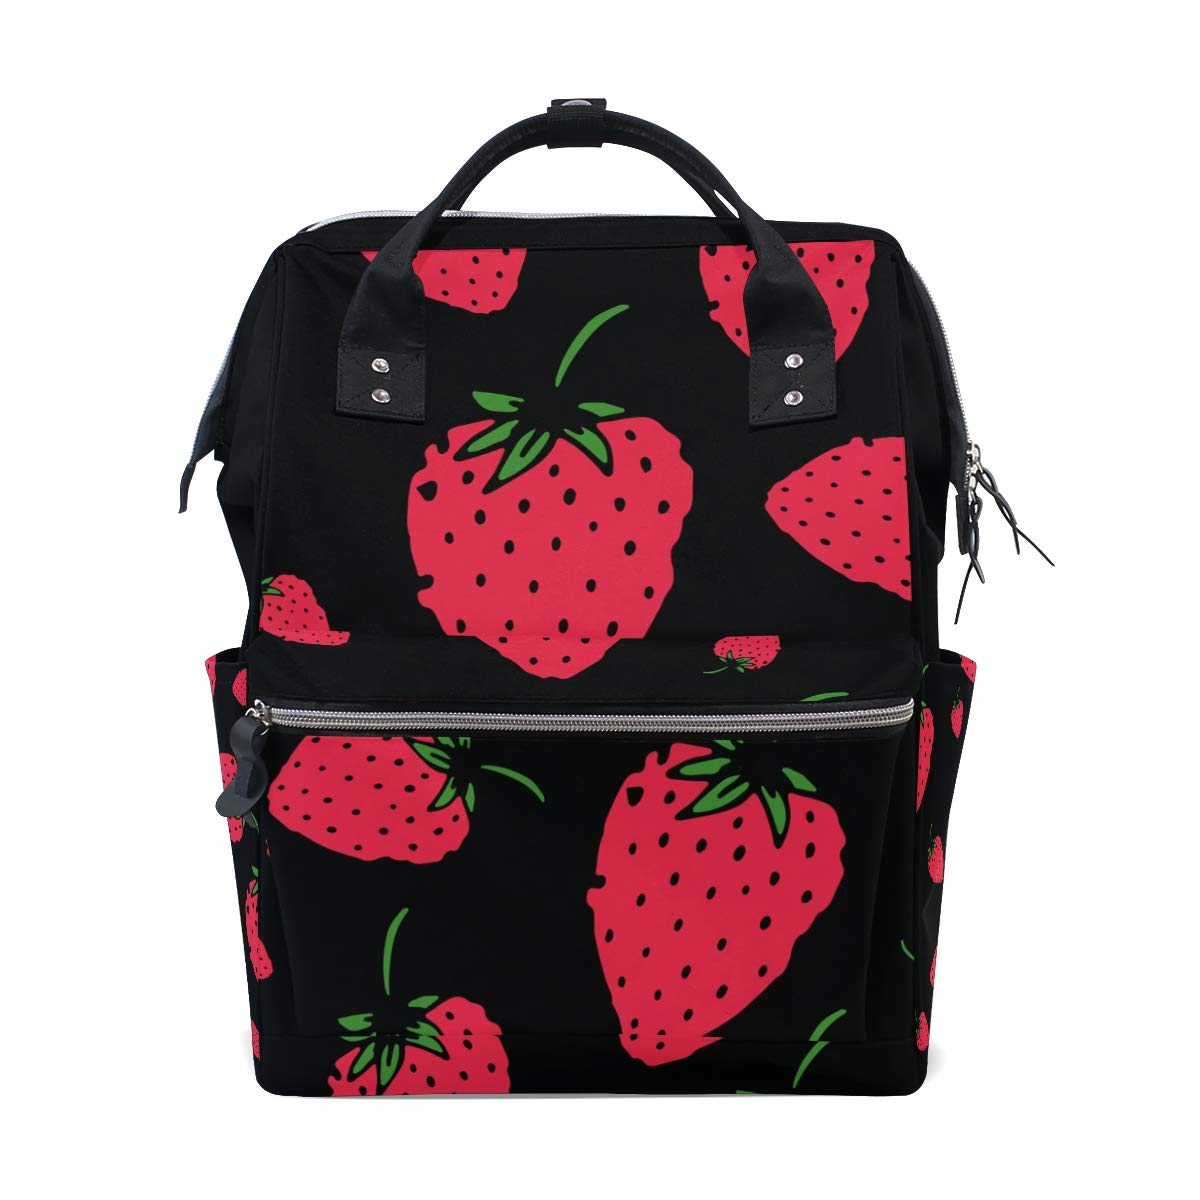 MERRYSUGAR Diaper Bag Backpack Travel Bag Large Multifunction Waterproof Black Strawberry Stylish and Durable Nappy Bag for Baby Care School Backpack